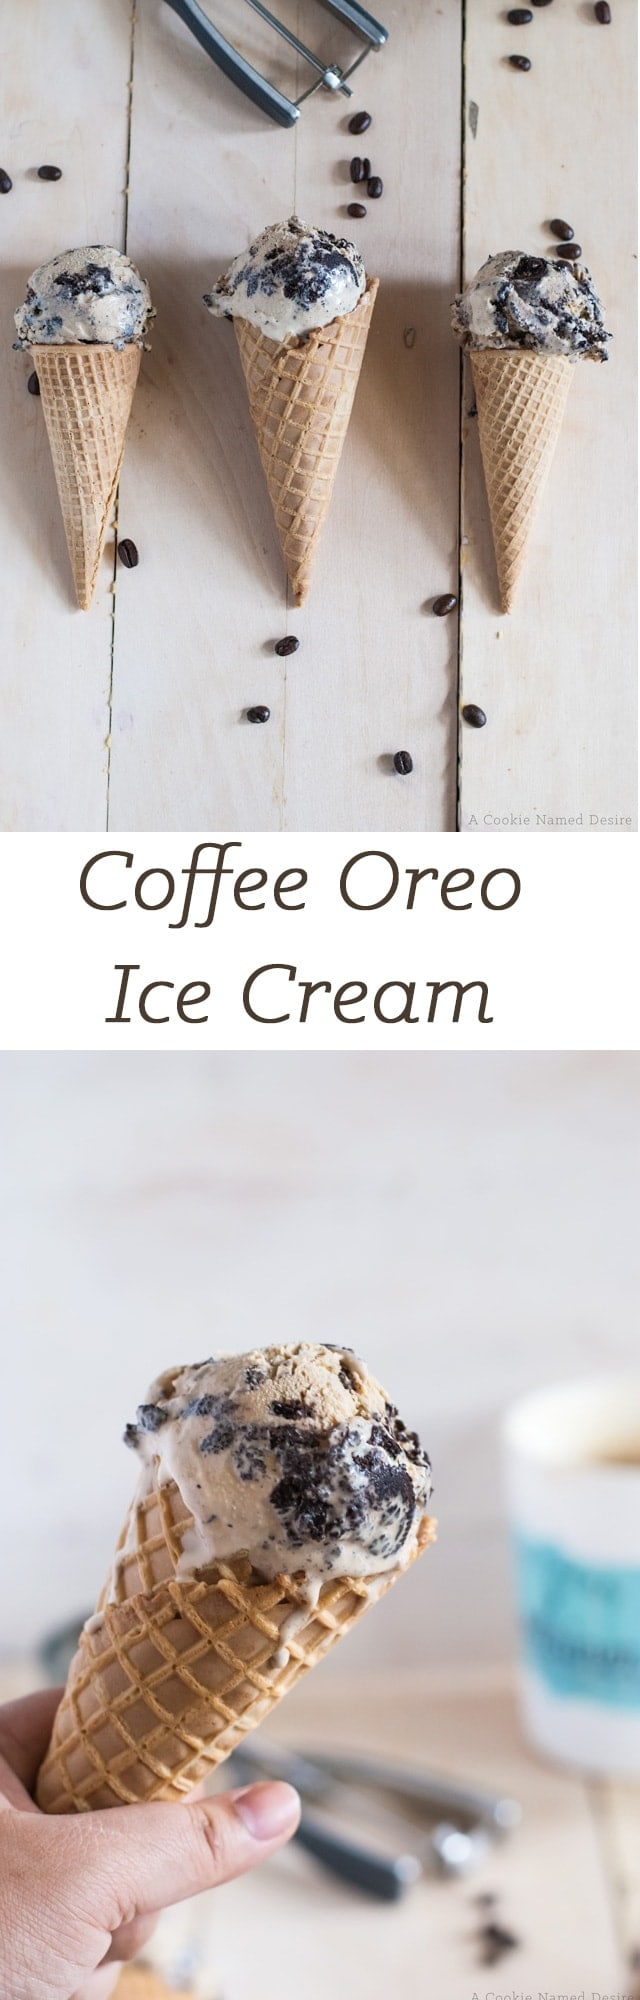 long-coffee-oreo-ice-cream